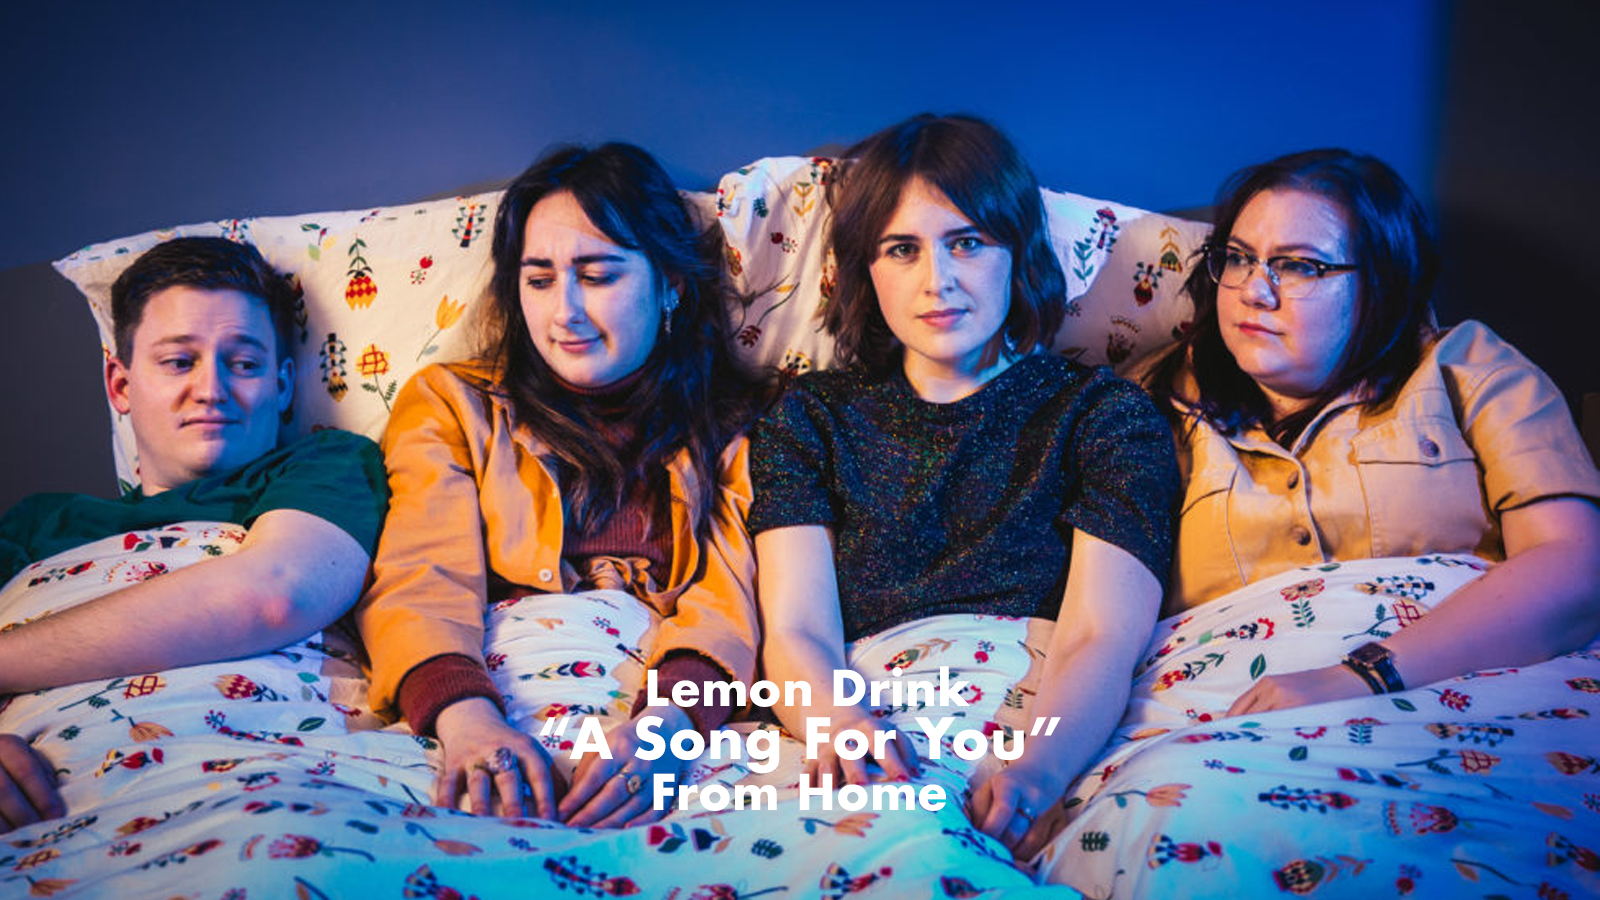 A Song For You - Lemon Drink